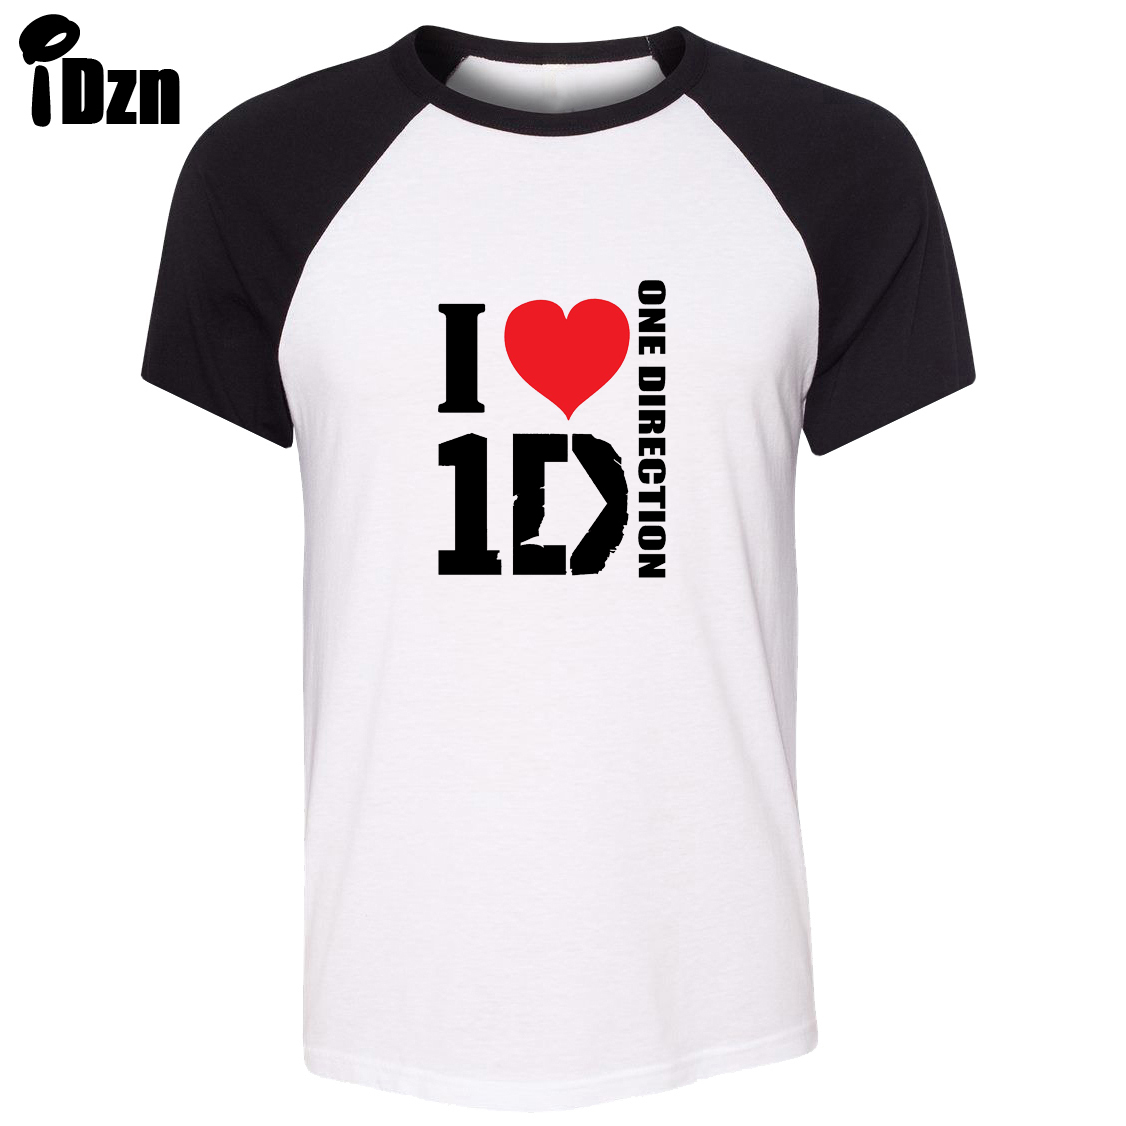 Design t shirt one direction - Unisex Summer T Shirt One Direction Band I Love 1 D Louis Harry Liam Zayn